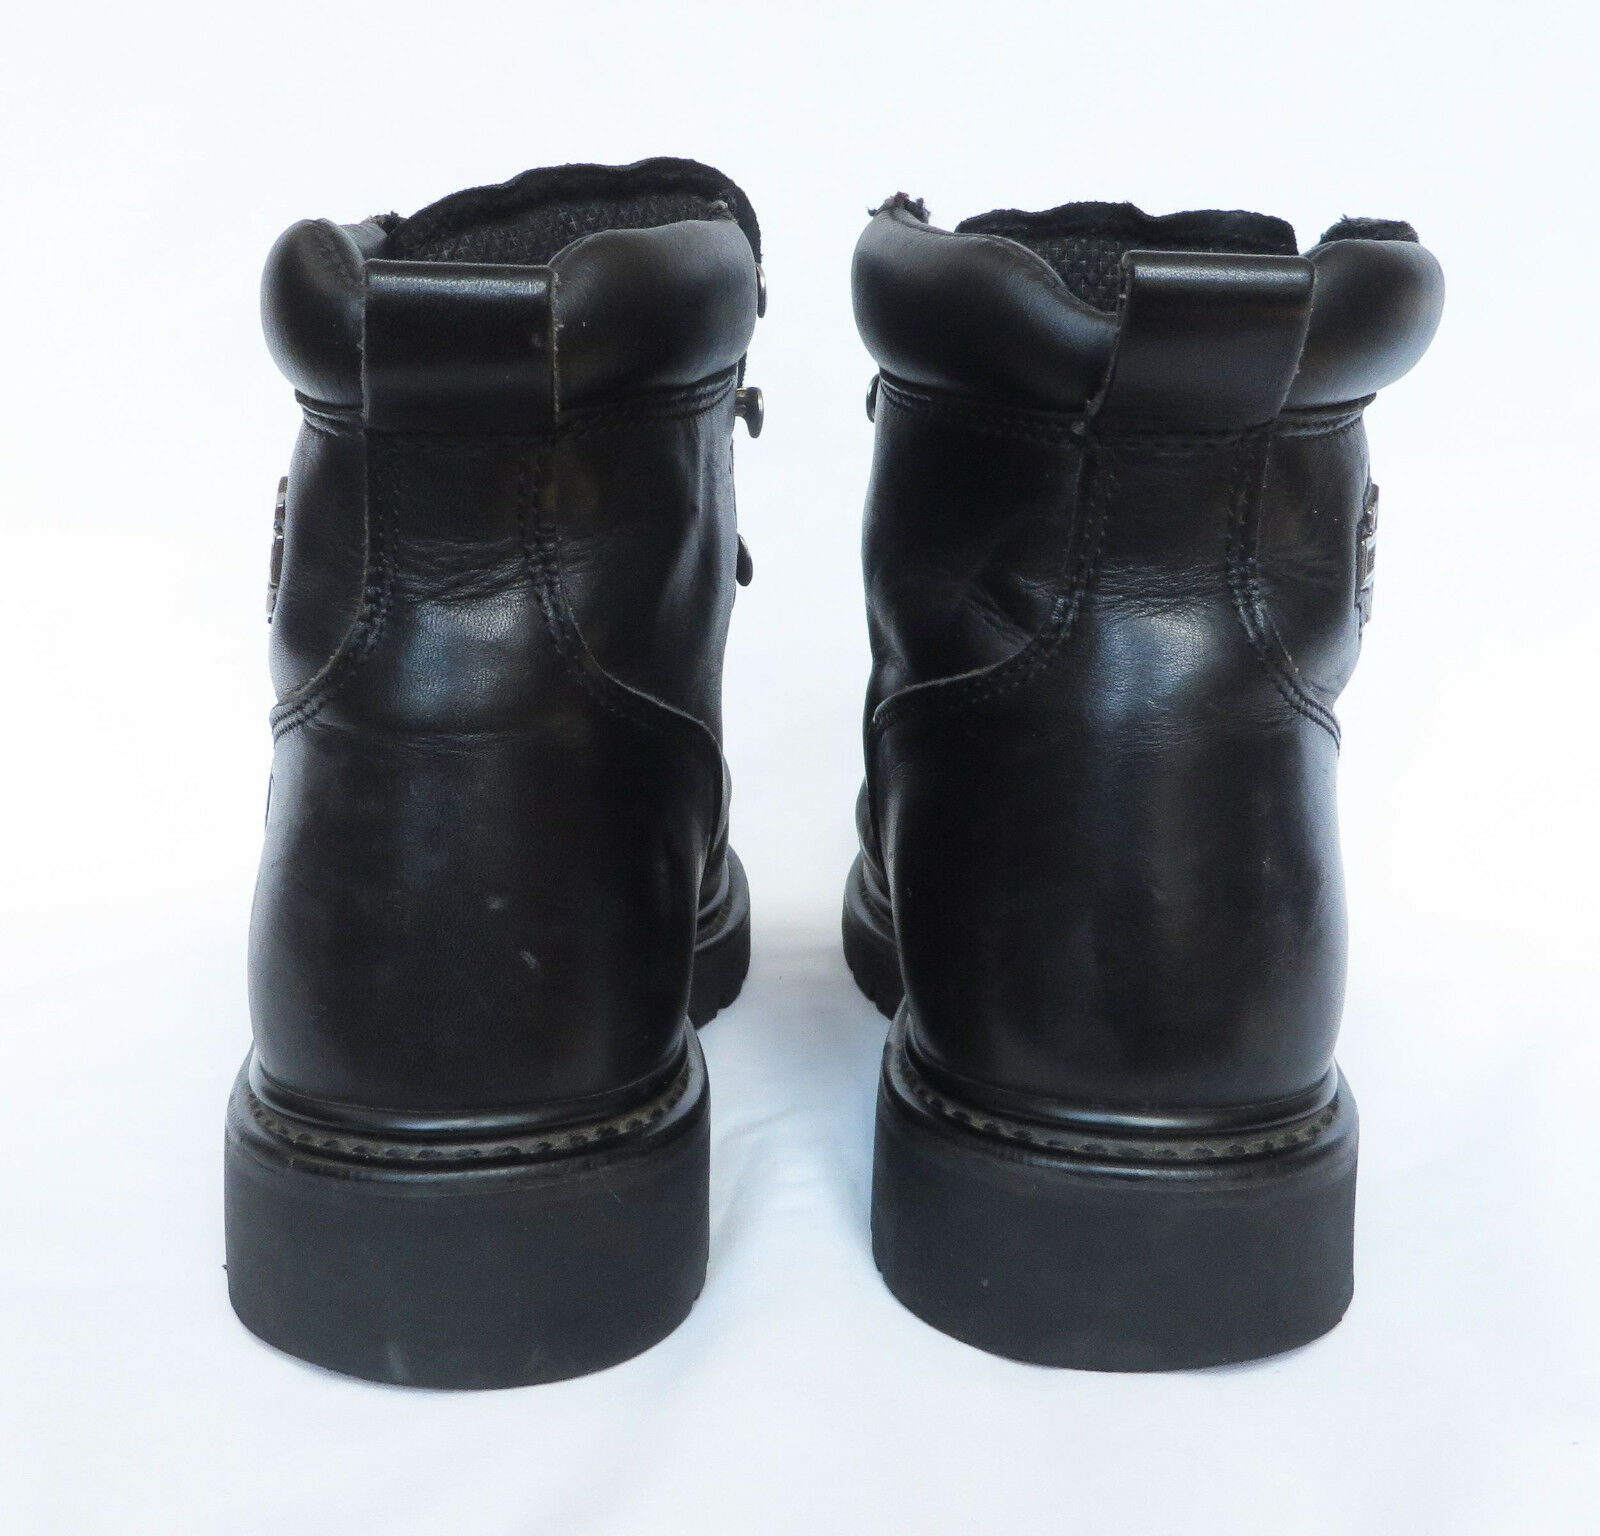 HARLEY DAVIDSON MOTORCYCLE Womens Leather Ankle Dipstick Biker Boots 9.5 9.5 9.5 41 7.5 494ef1